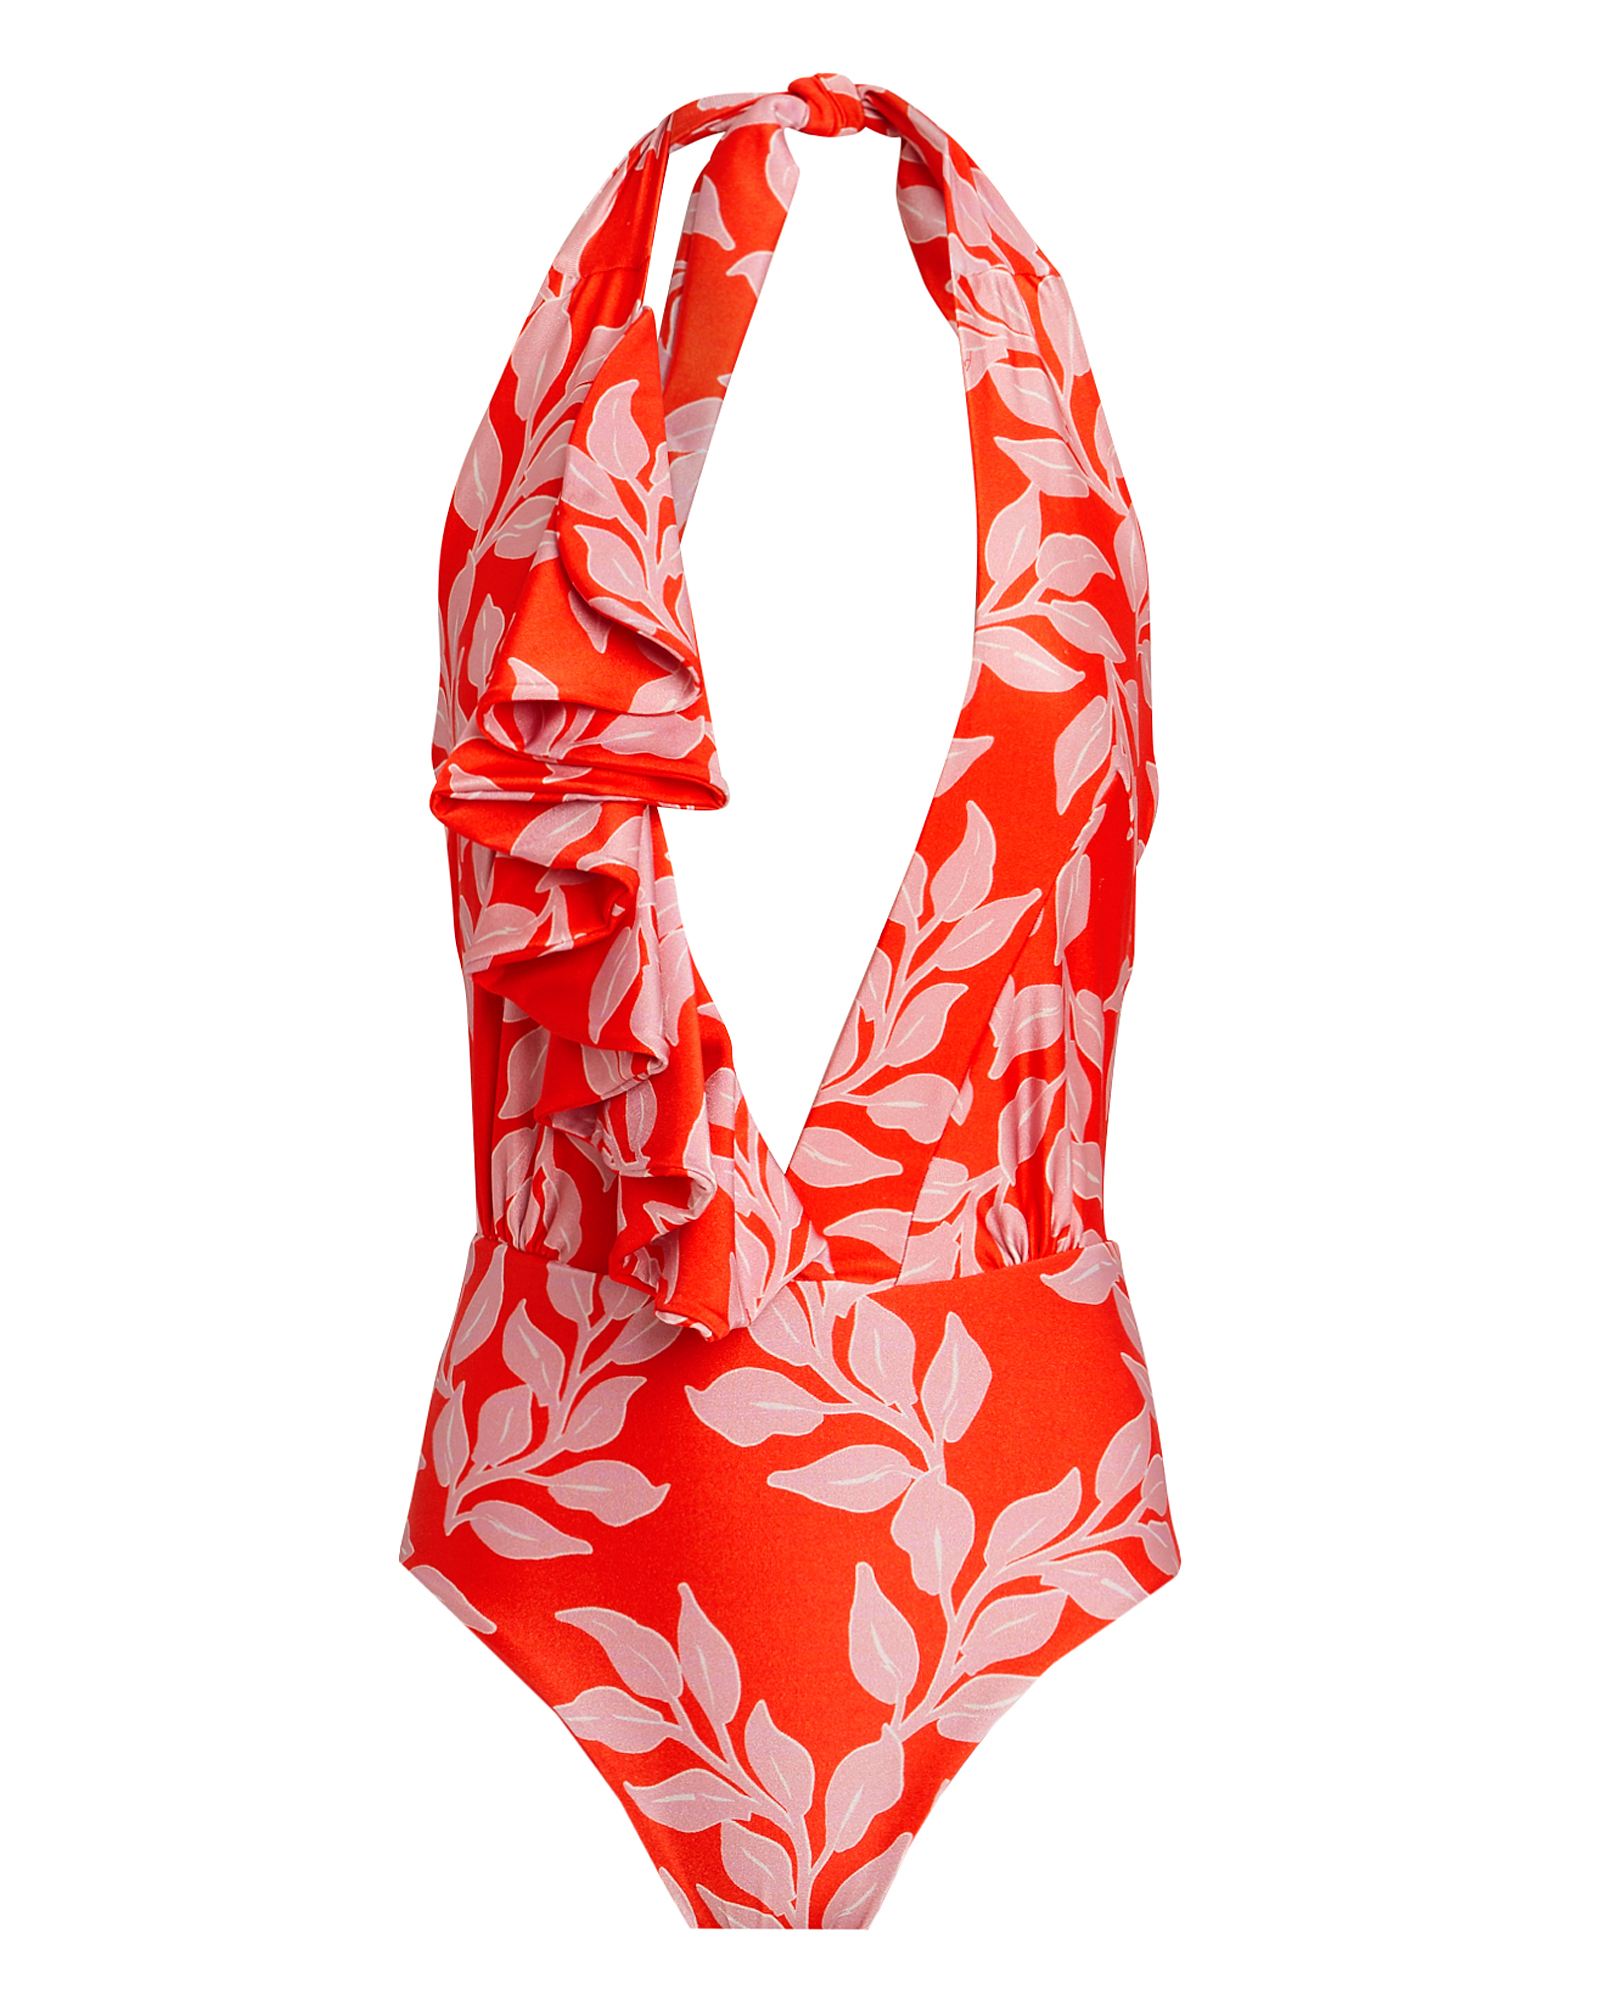 Patbo  PATBO LEAF PRINTED ONE PIECE SWIMSUIT  PINK/RED P